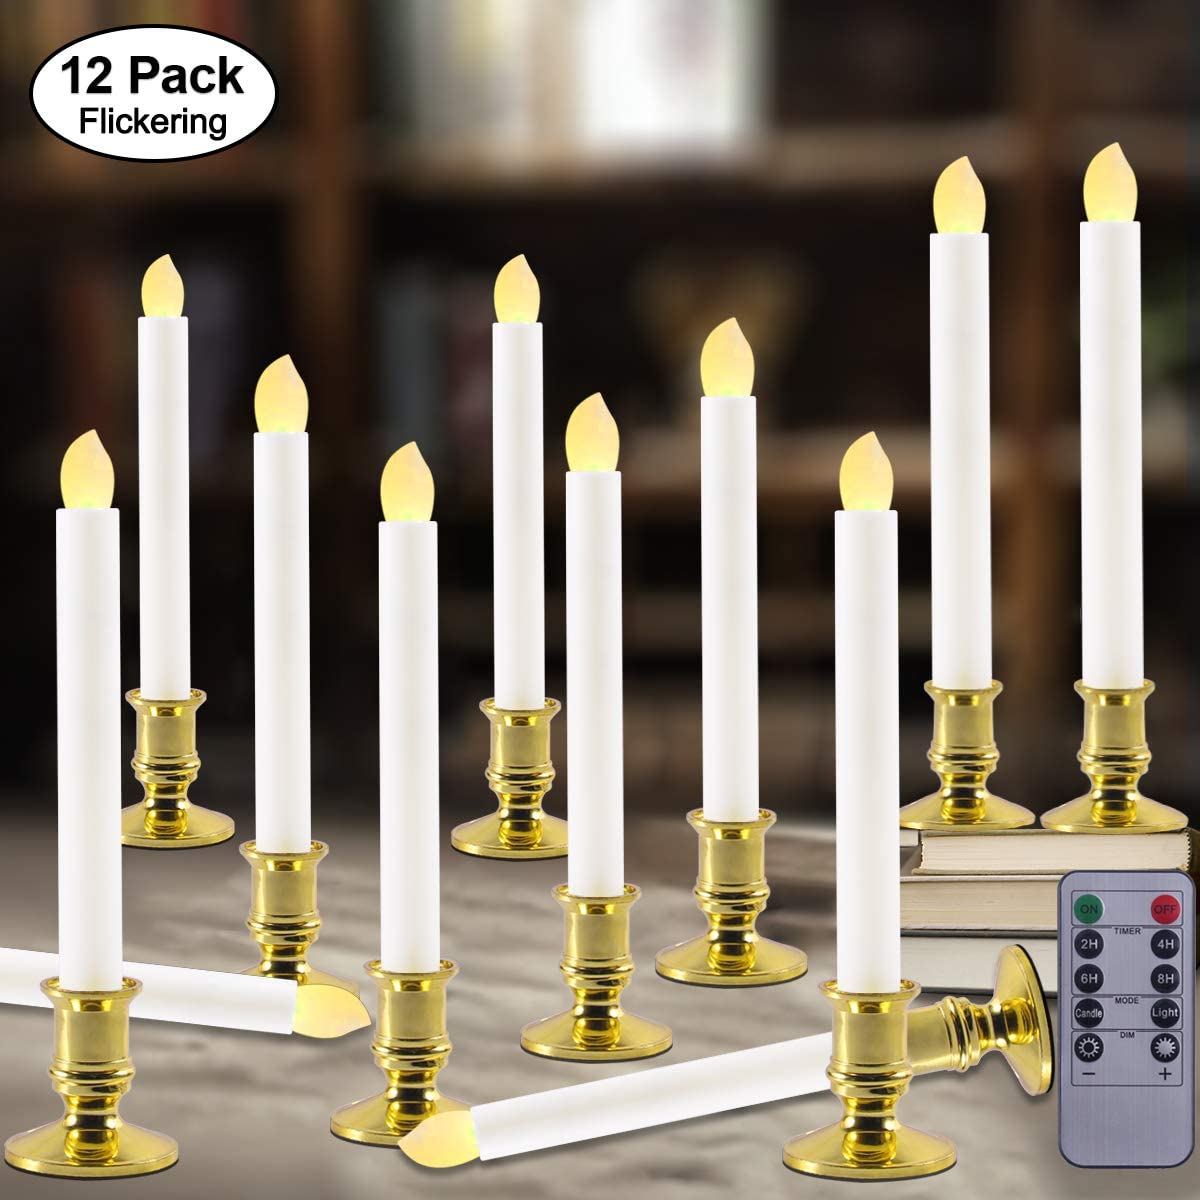 Windows Candles with Remote Timer Battery Operated Flickering LED Electric Candle Lights with Removable Tapers Pillar Candle Holders for Christmas Decorations Seasonal Celebration 12pcs Gold Base